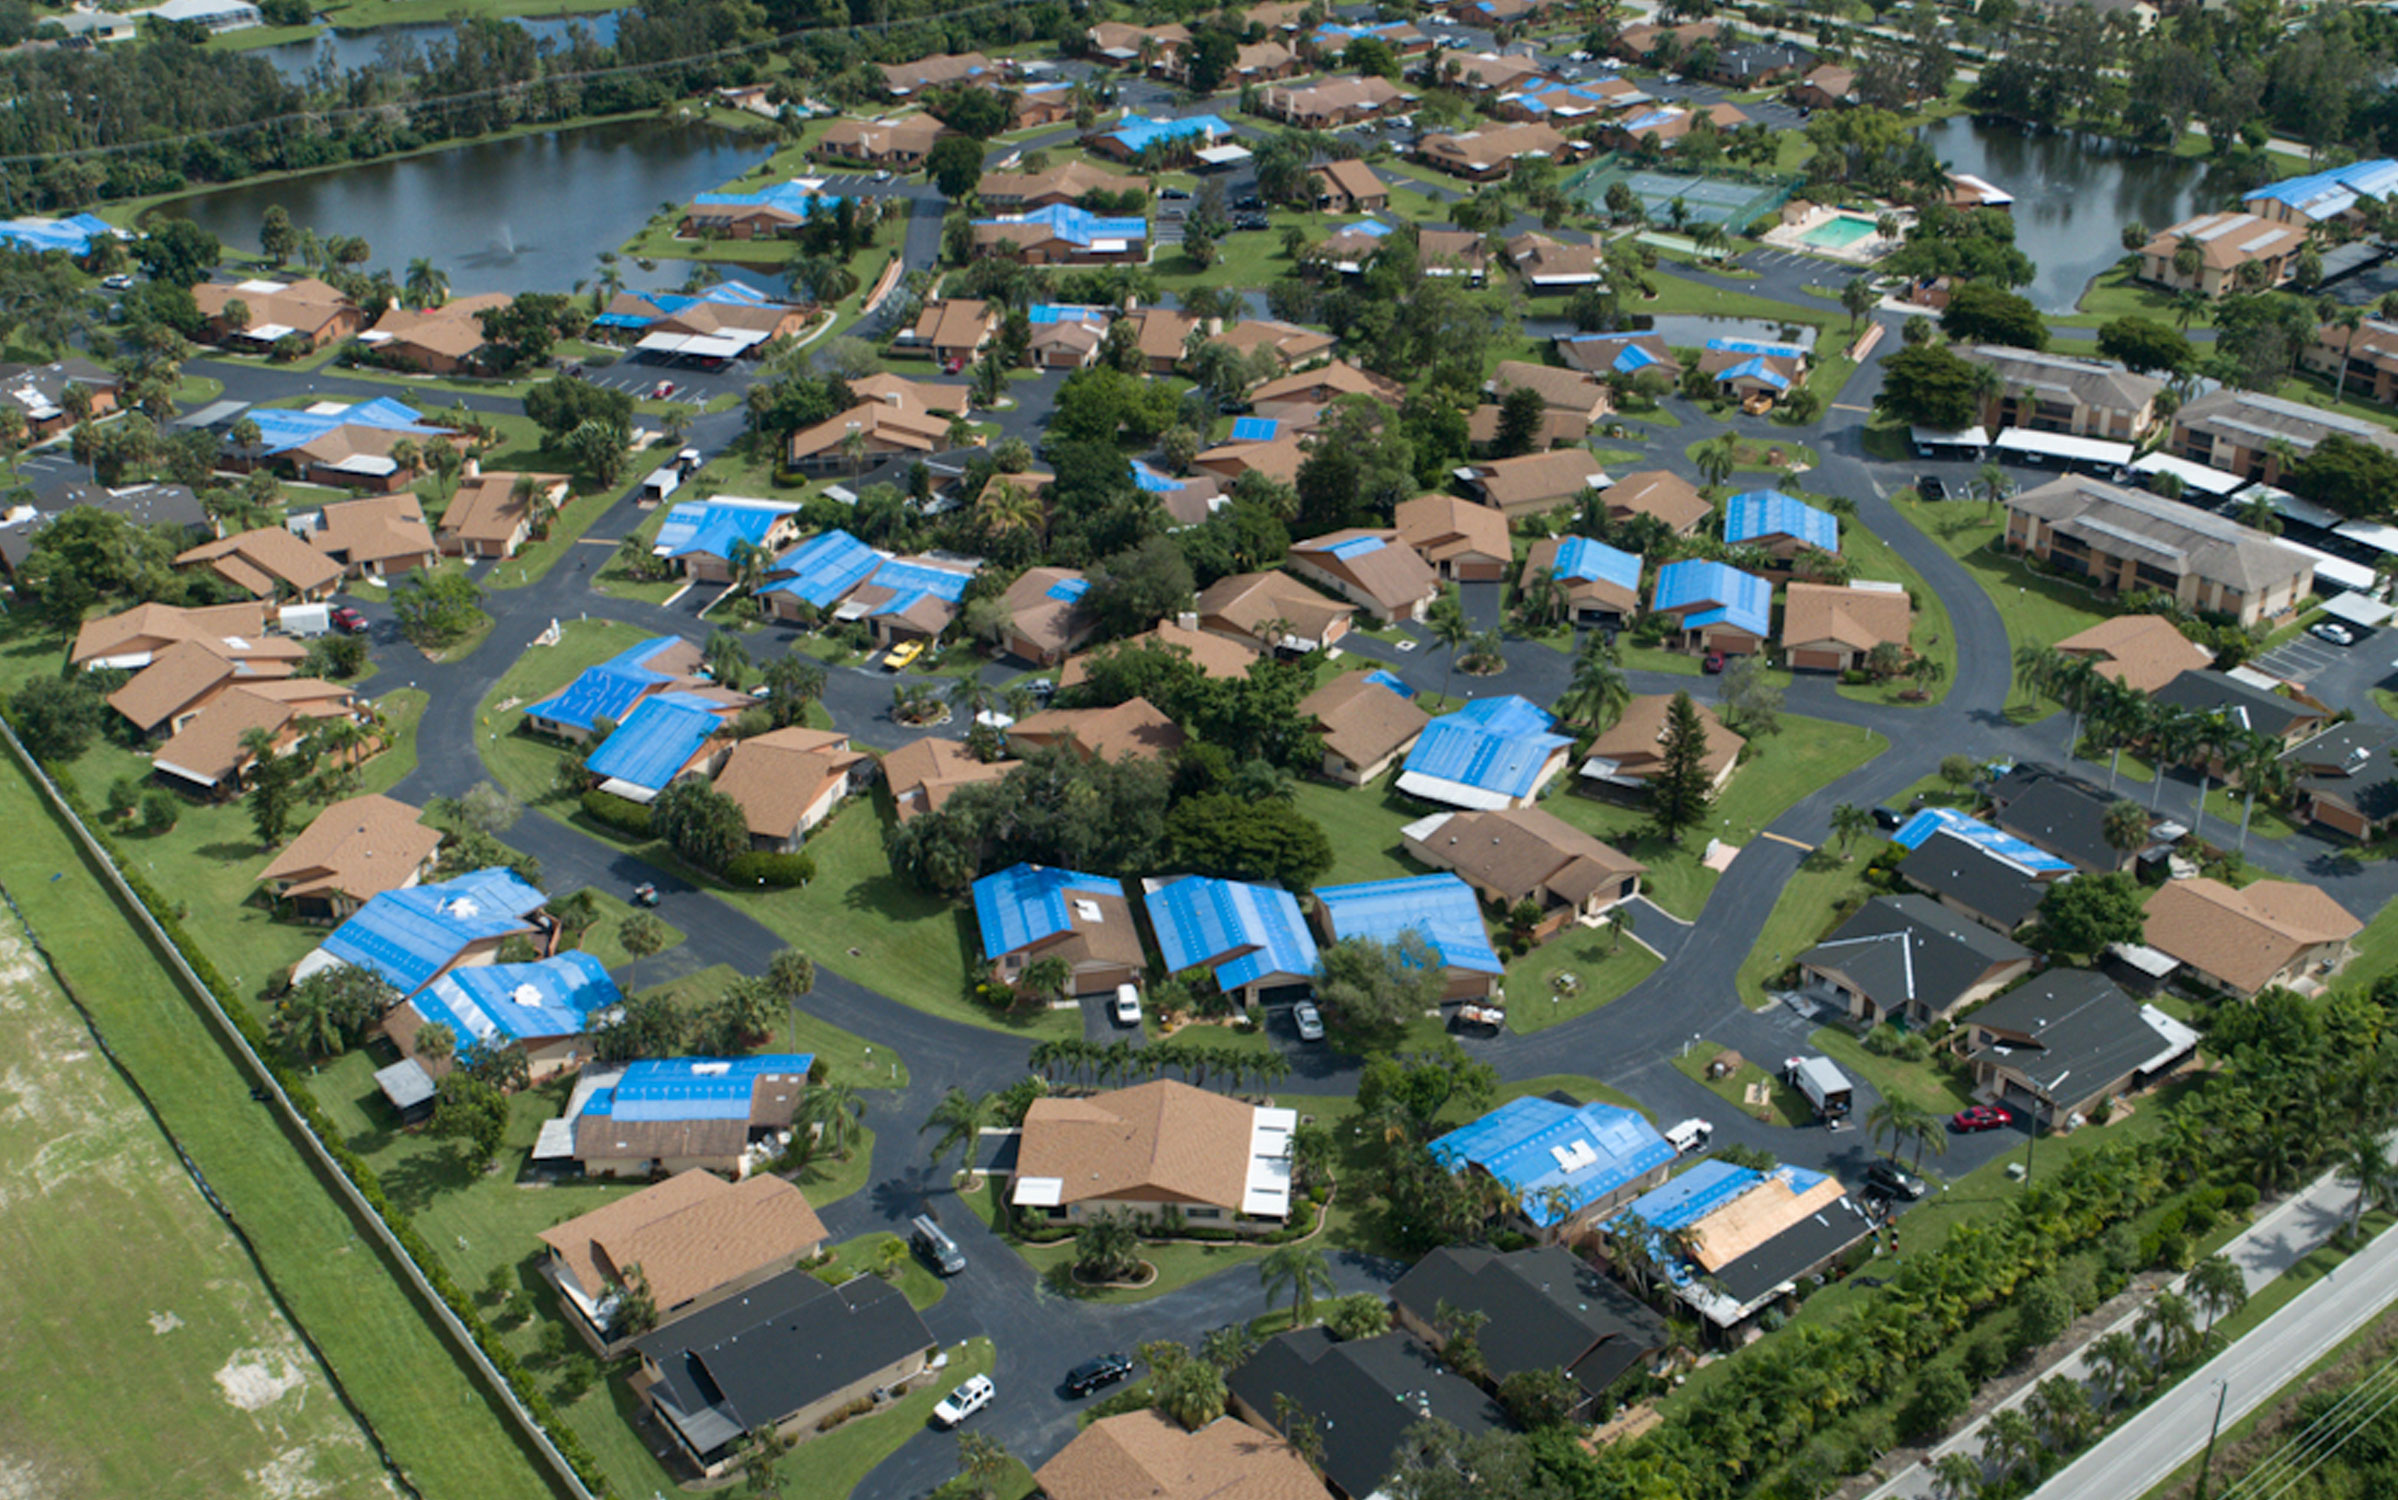 Drone shot of HOA with roofs under construction being repair